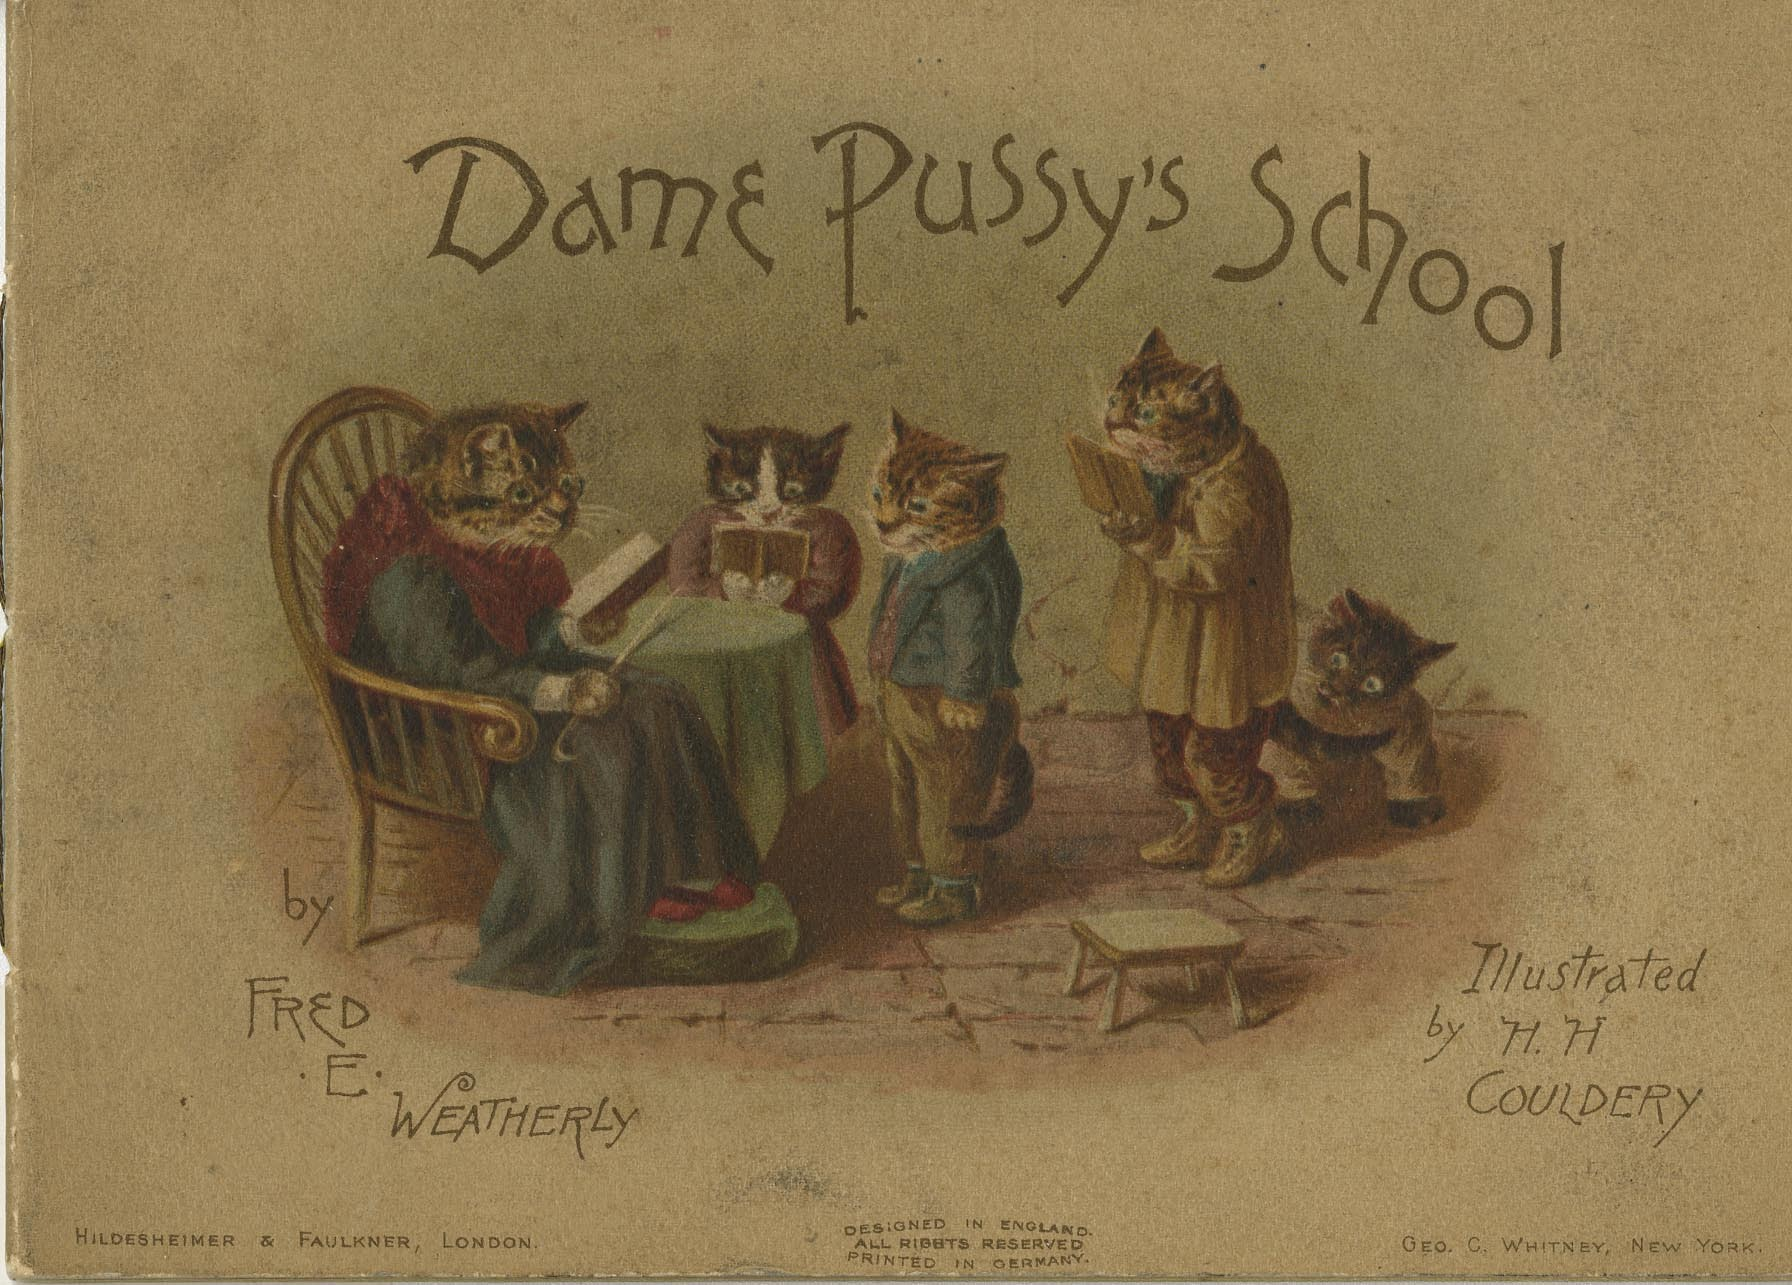 Dame Pussy's School